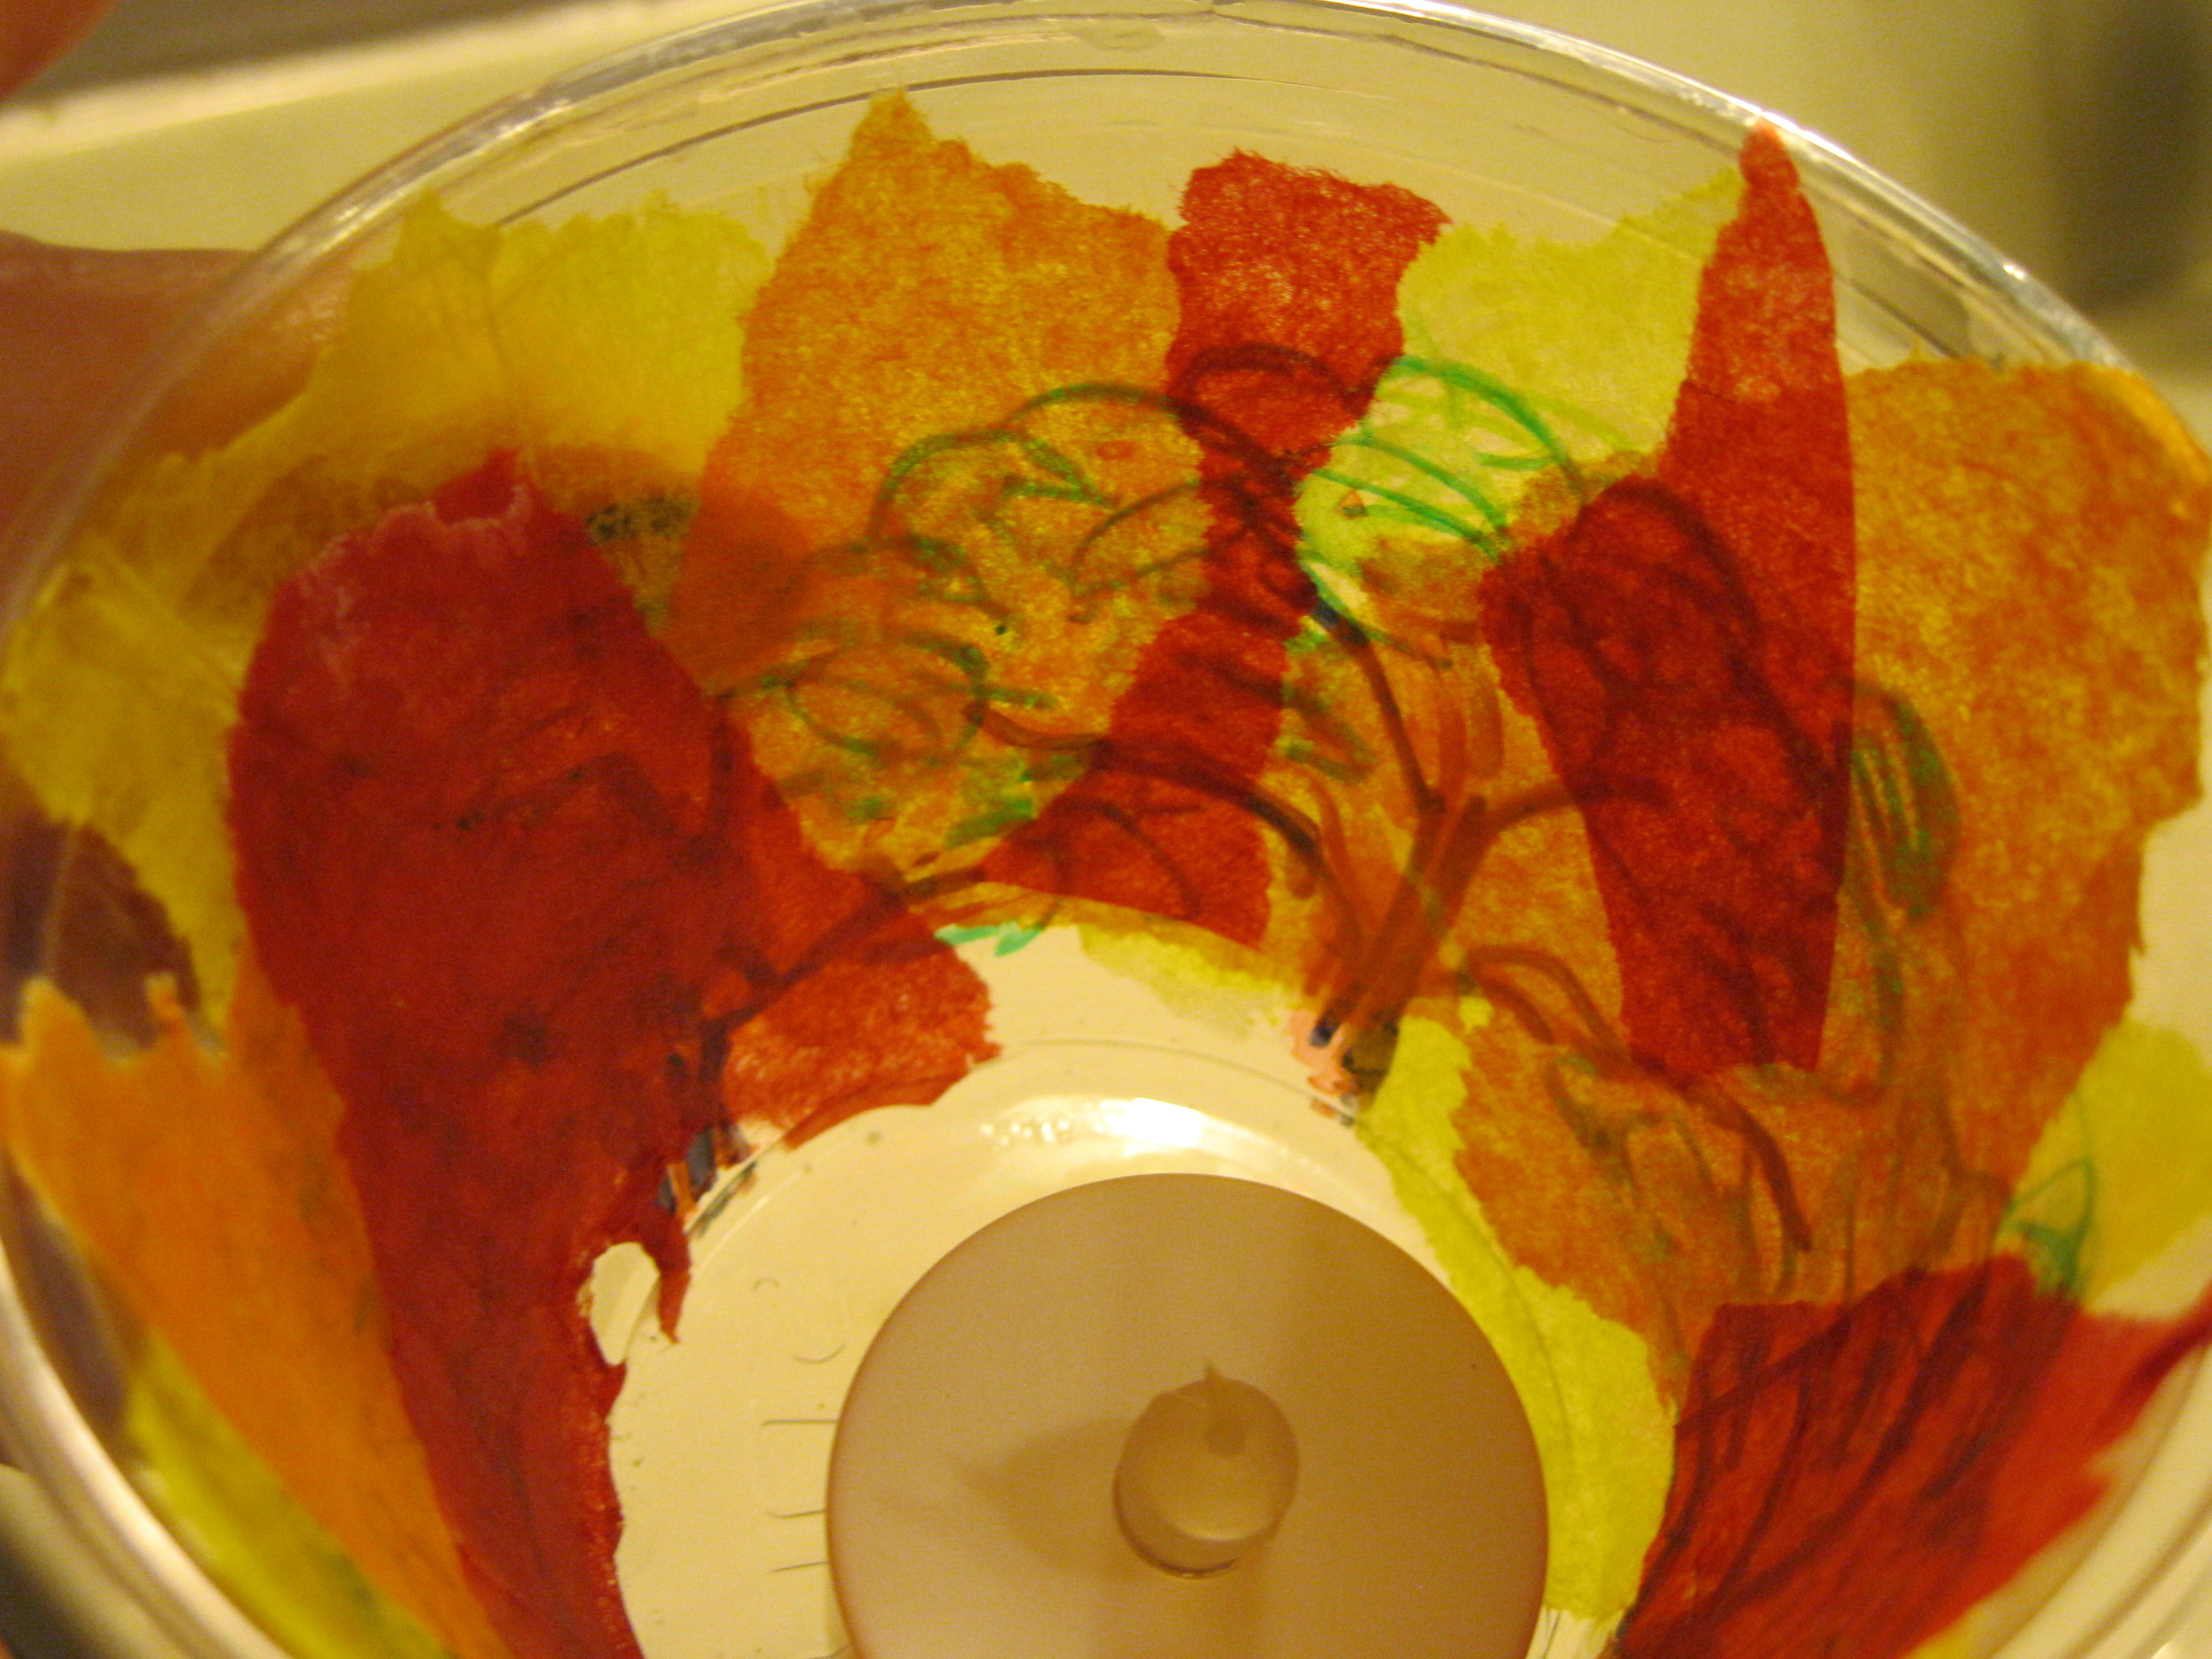 Layer tissue paper to create flames